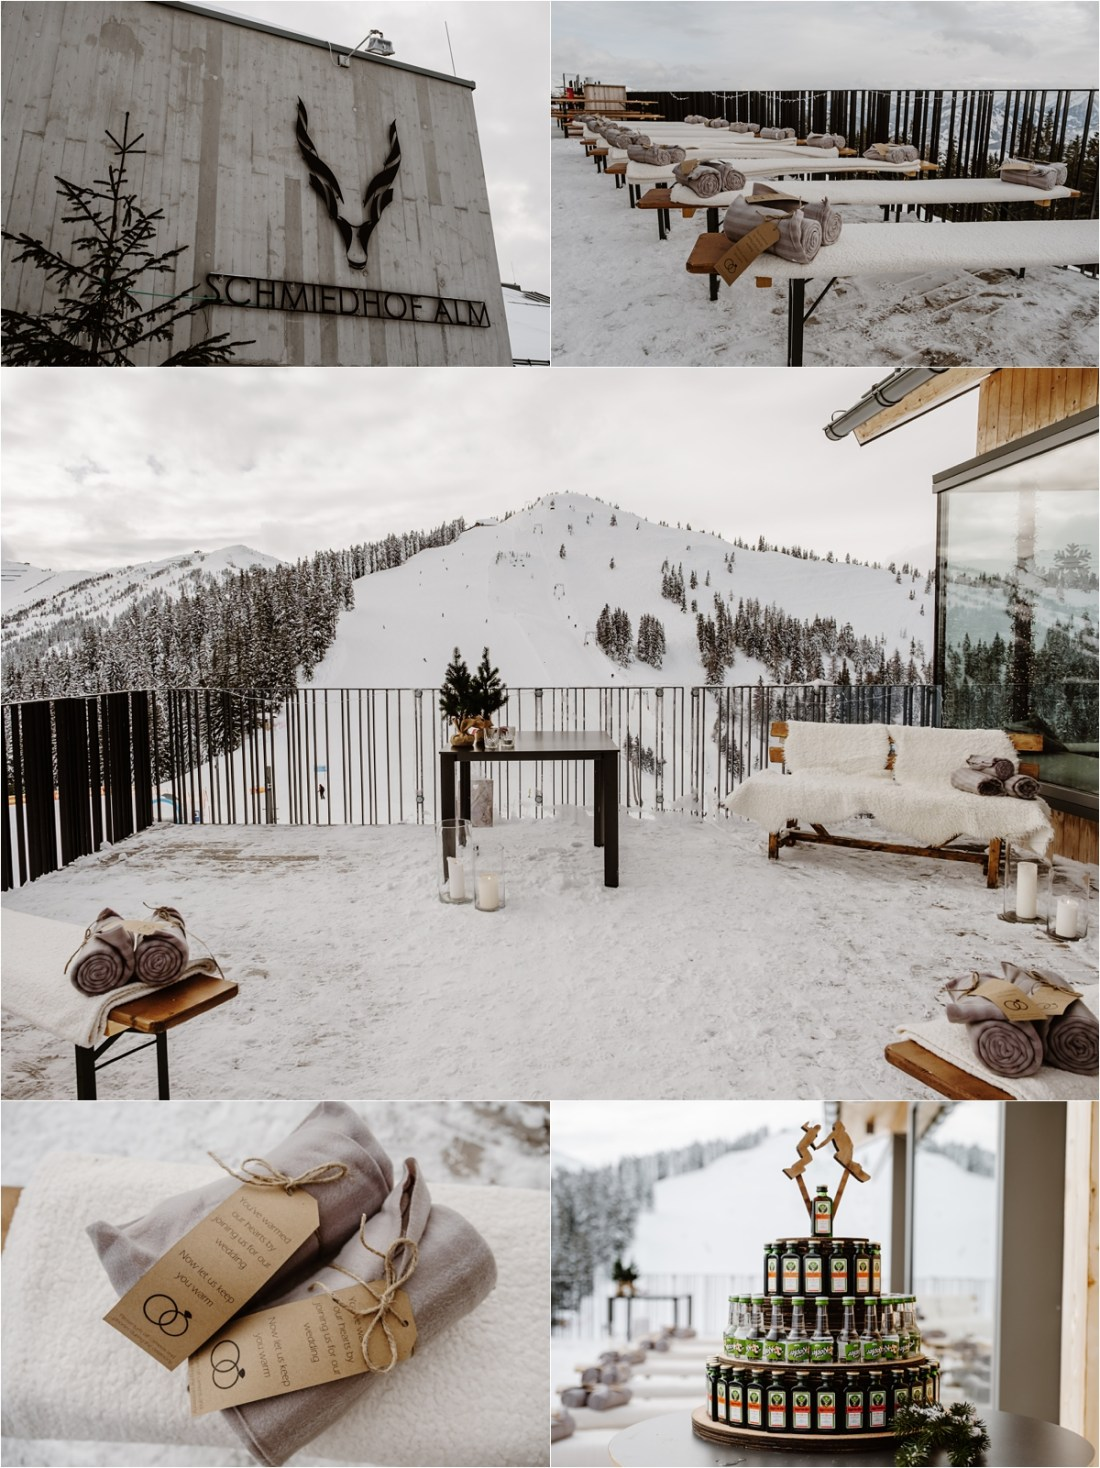 An outdoor winter wedding ceremony at the Schmiedhof Alm in Zell Am See by Wild Connections Photography